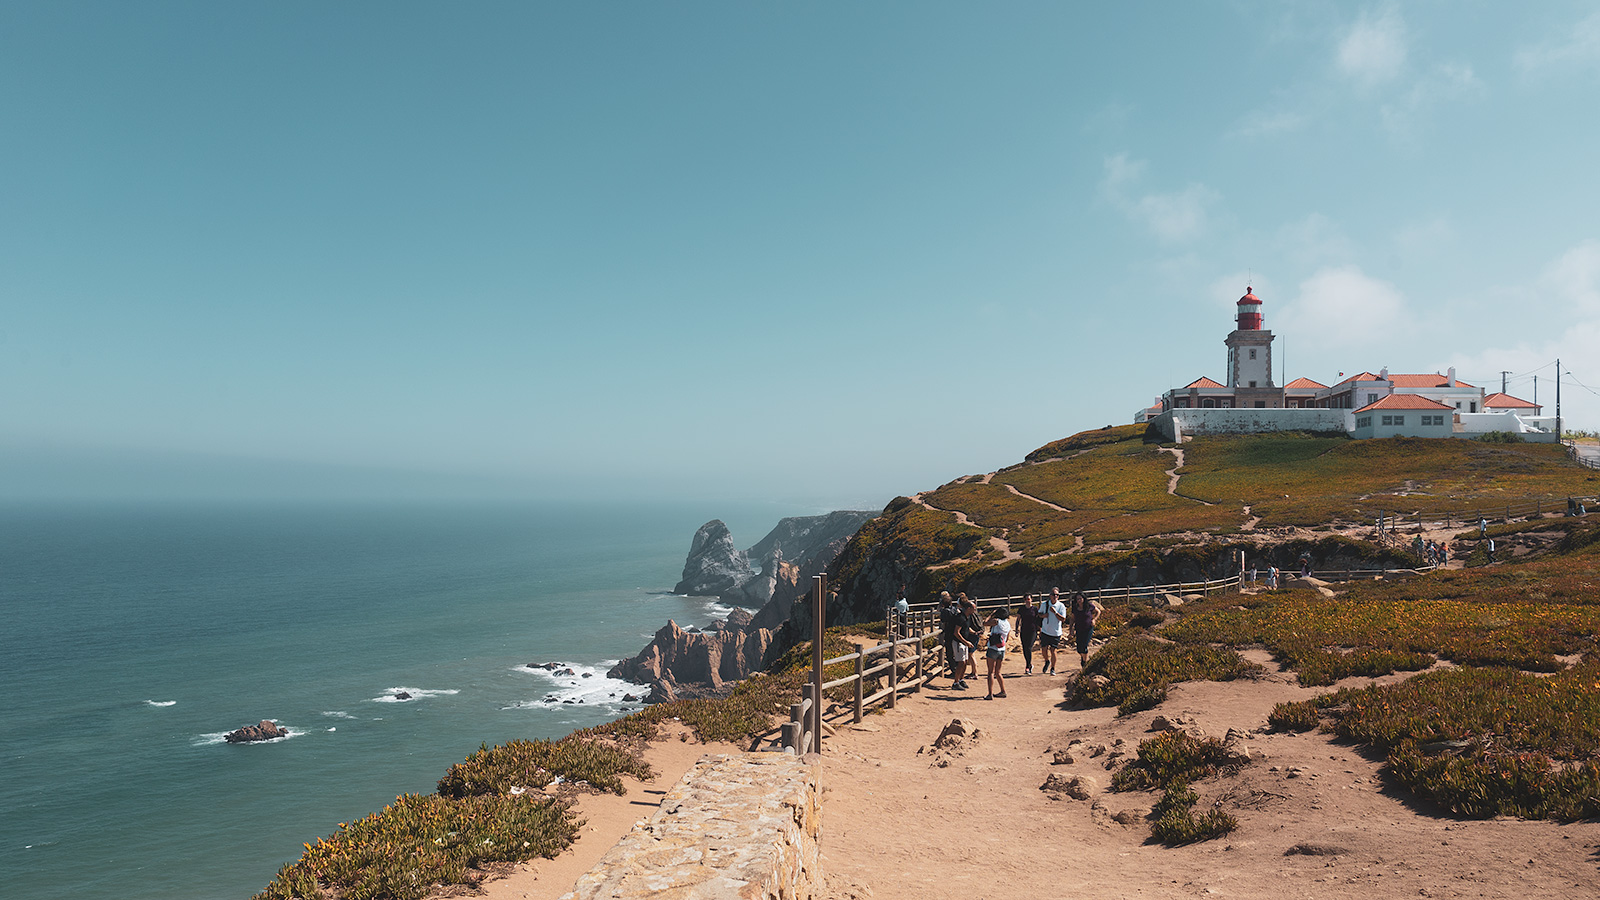 eight of the cliffs at Cabo da Roca is over 100 meters